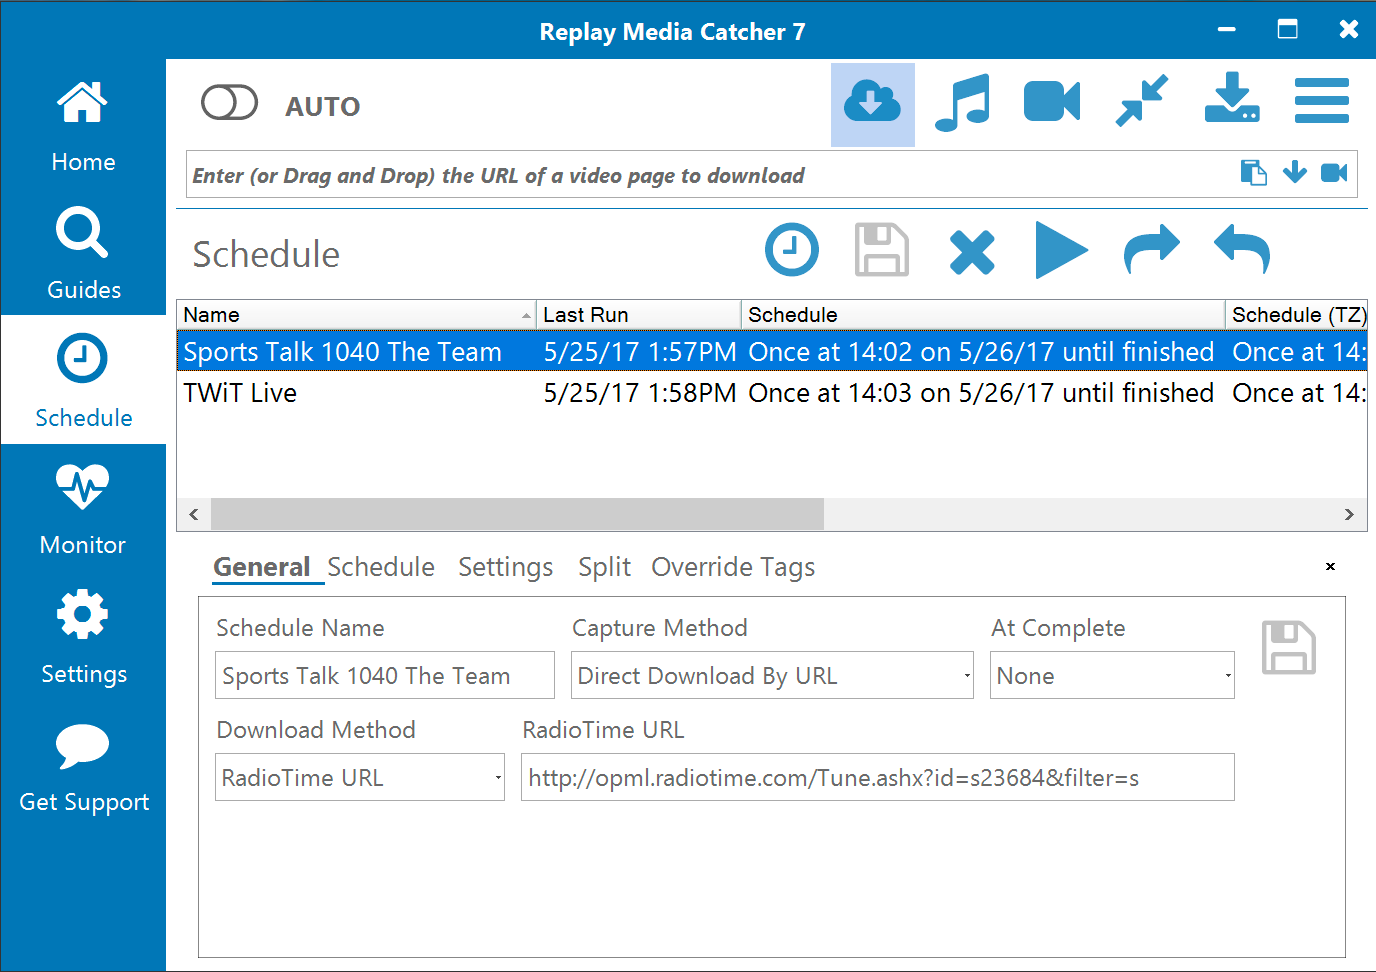 Replay Media Catcher 7 User Guide : Replay Media Catcher for